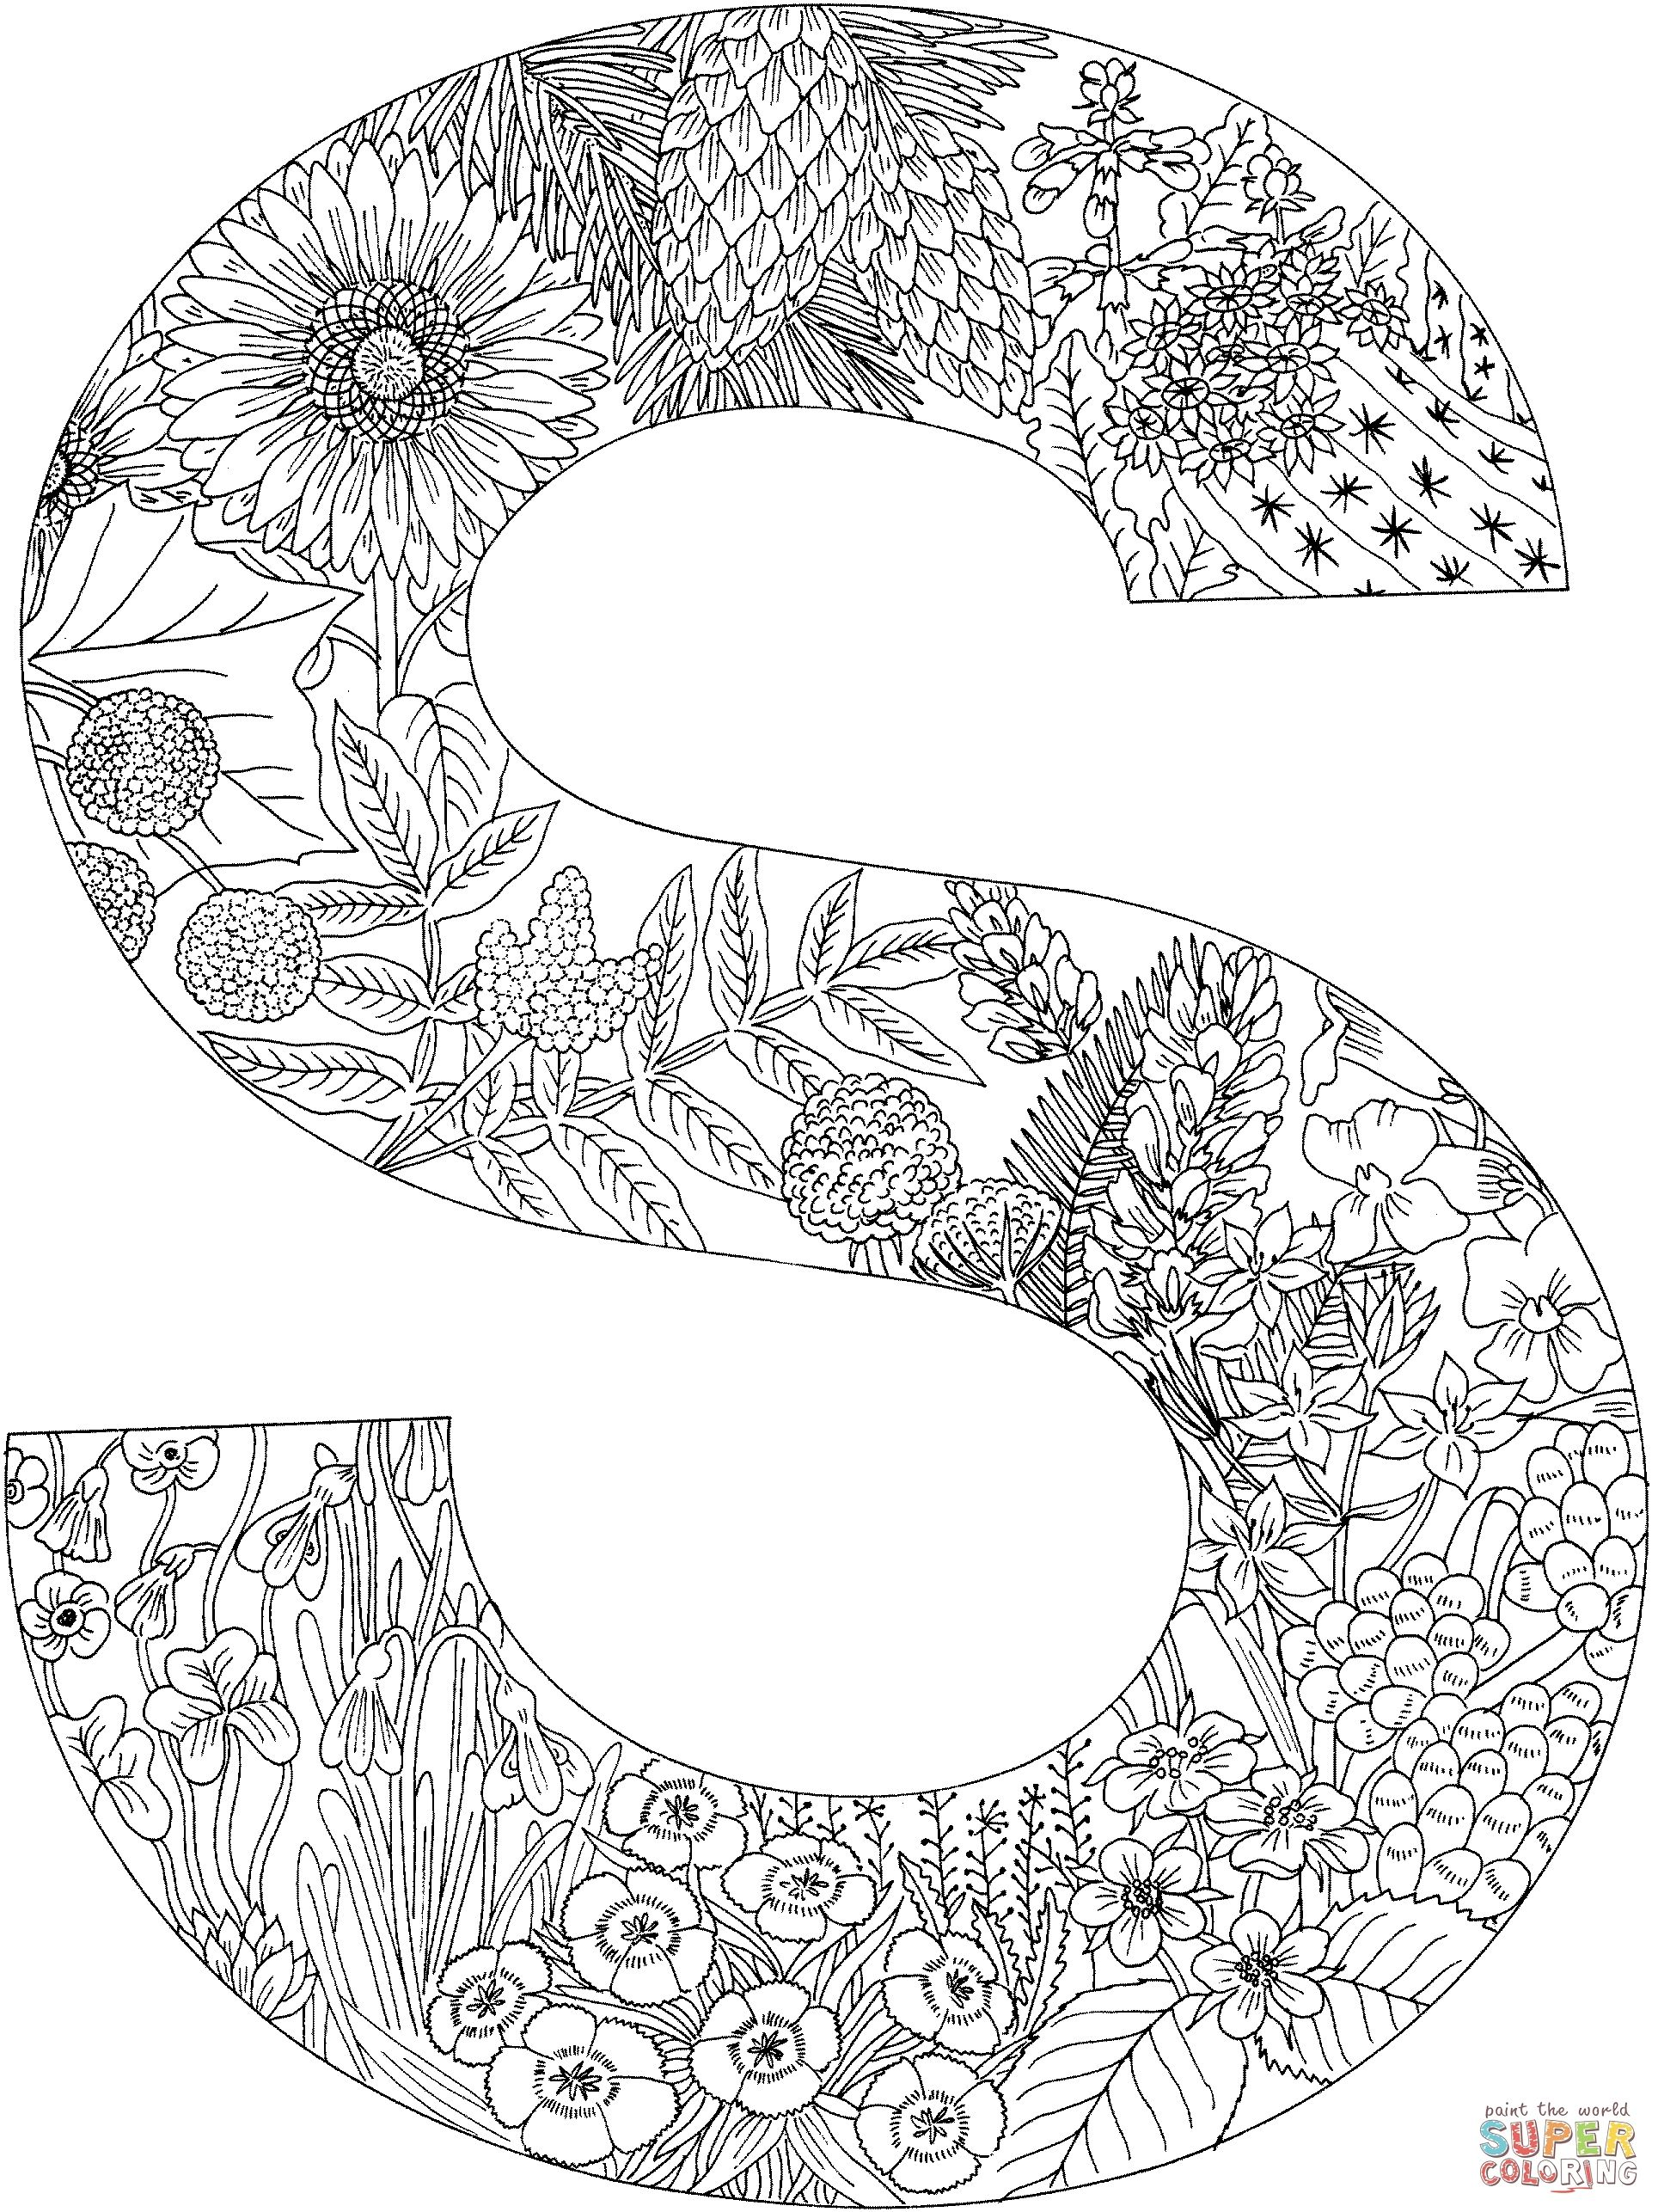 coloring page letters - Google Search | Alphabet coloring ...